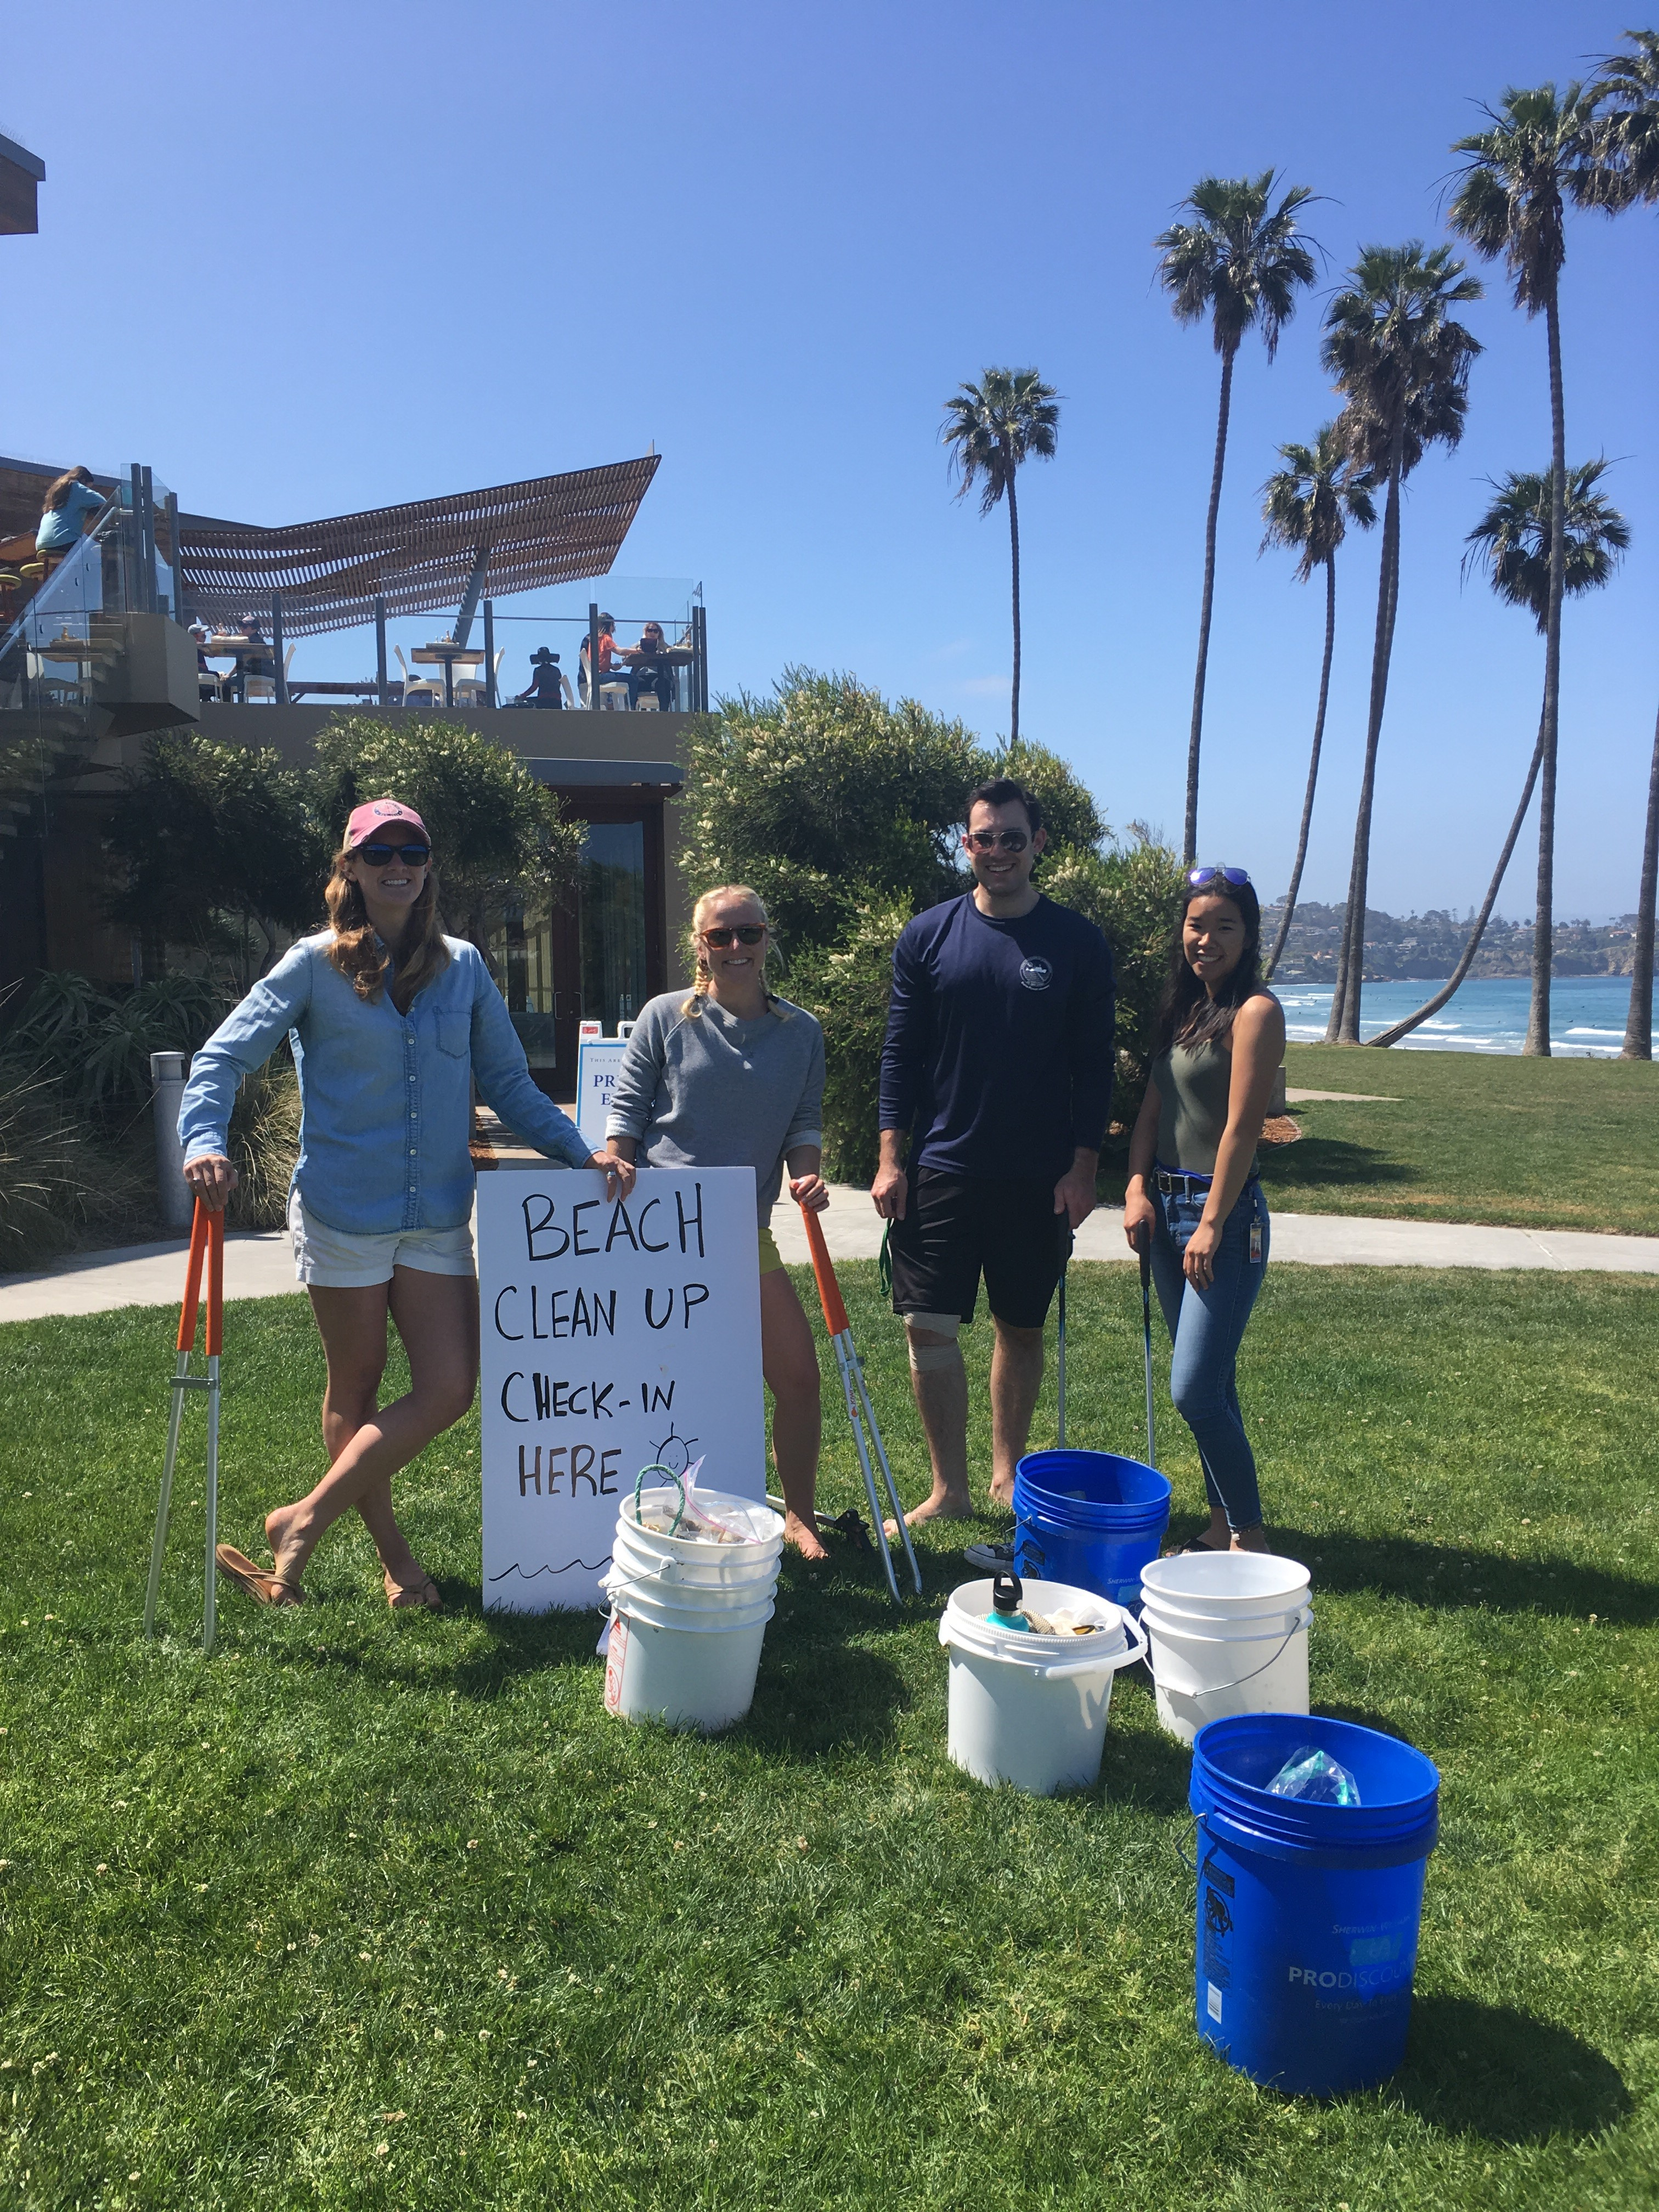 Scripps students and staff pose with the buckets of trash they collected on the beach as part of Earth Week